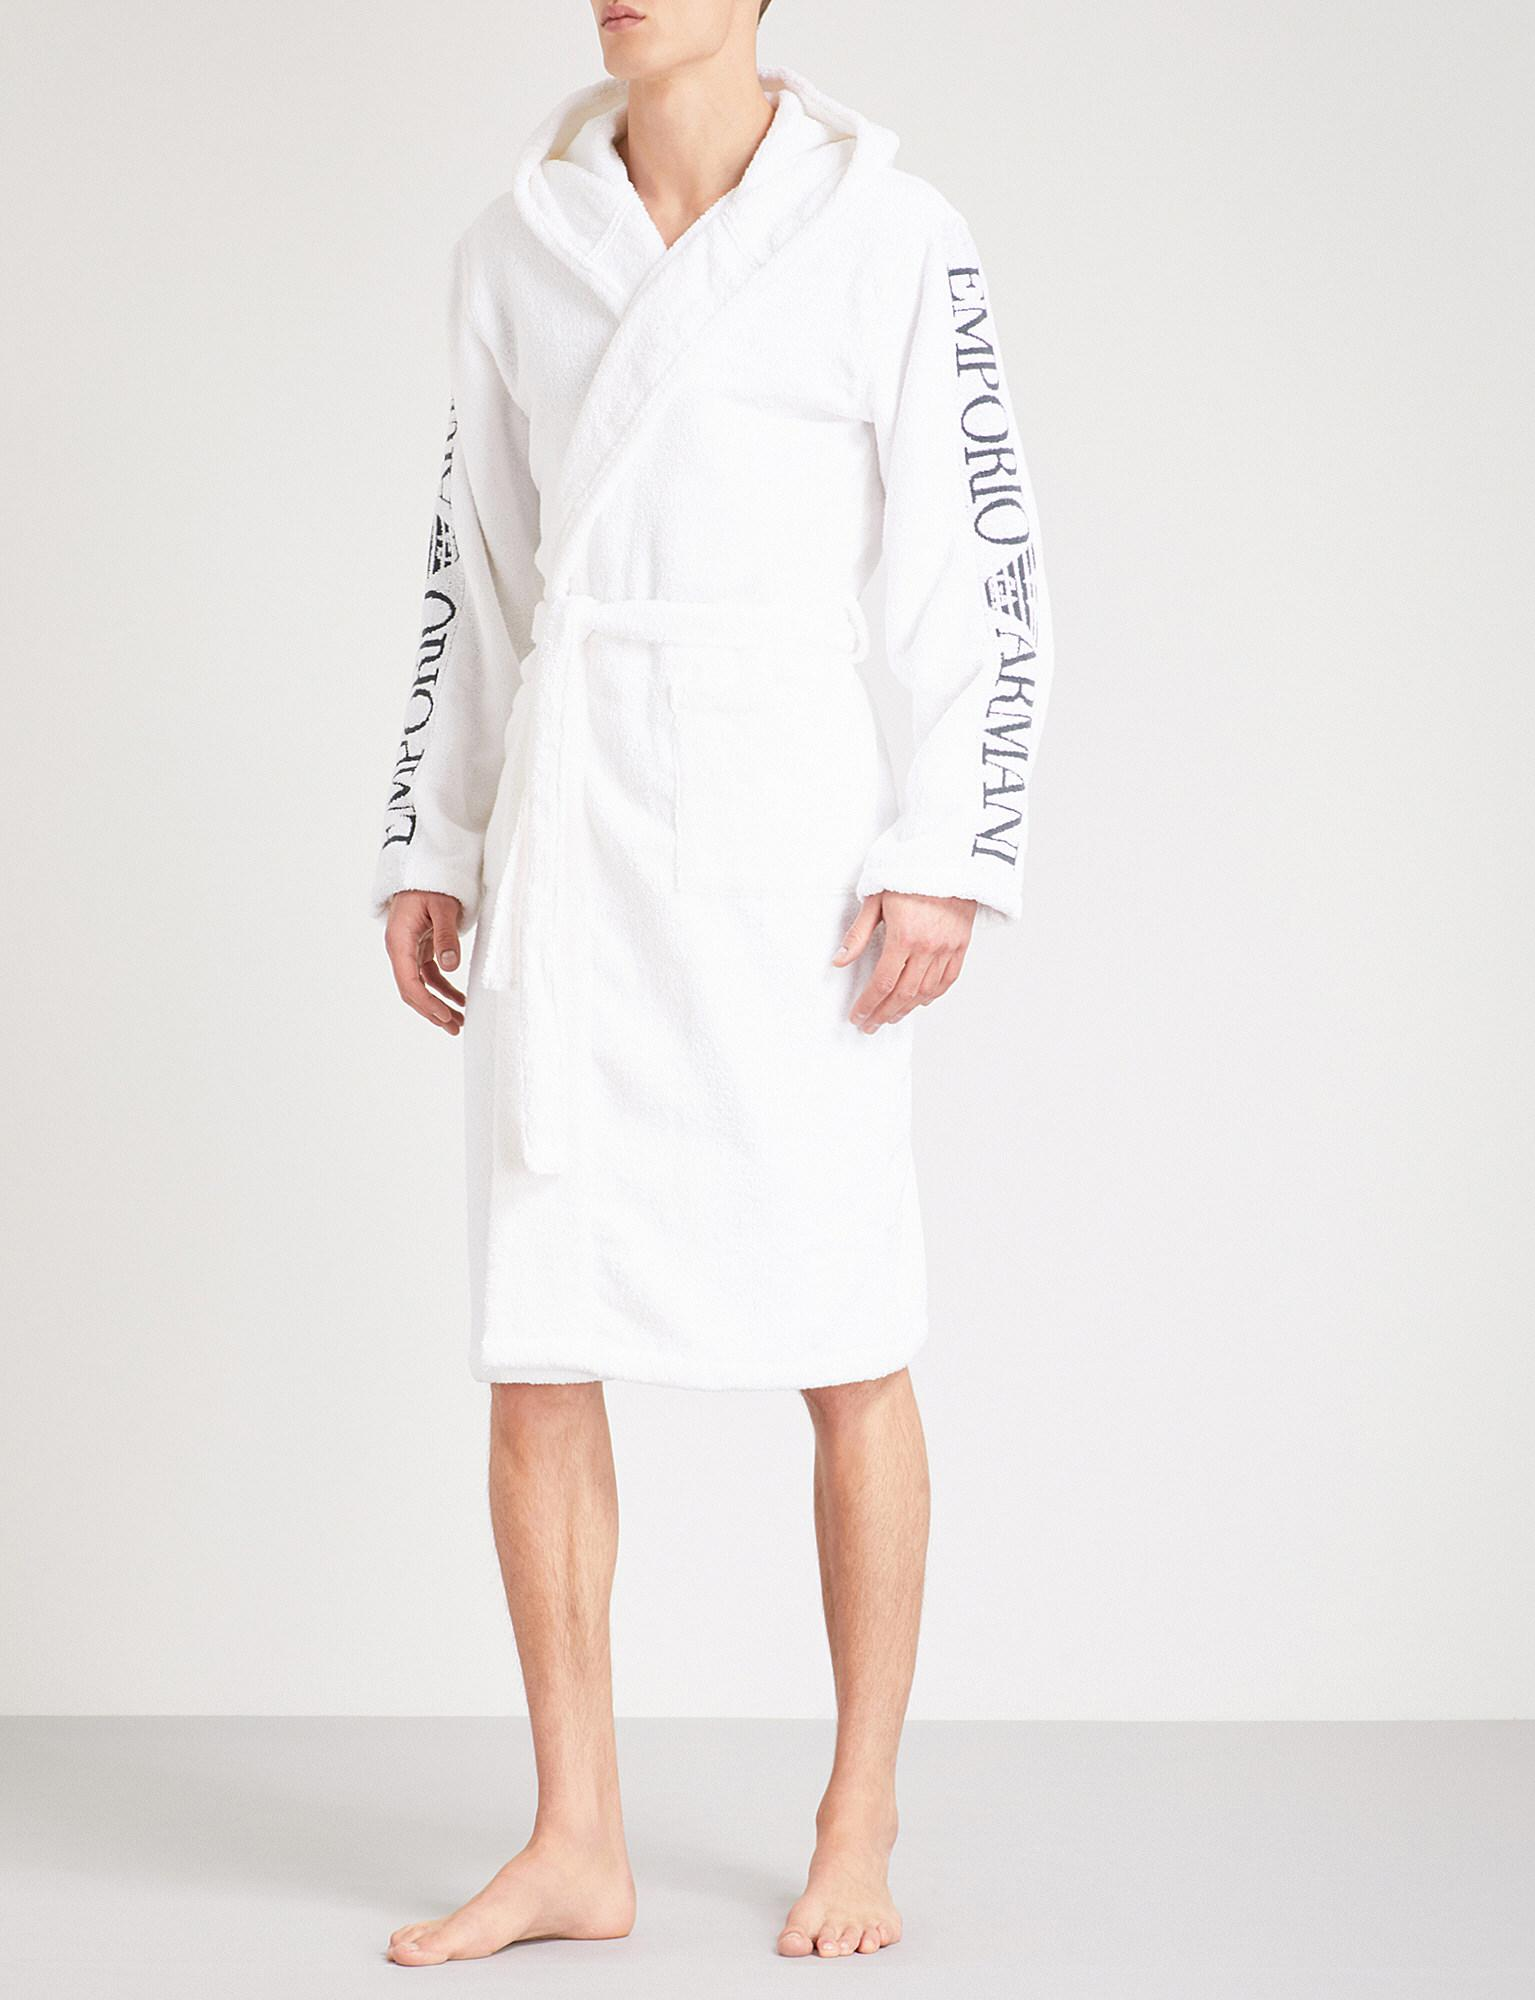 Lyst - Emporio Armani Hooded Towelling Dressing Gown in White for Men